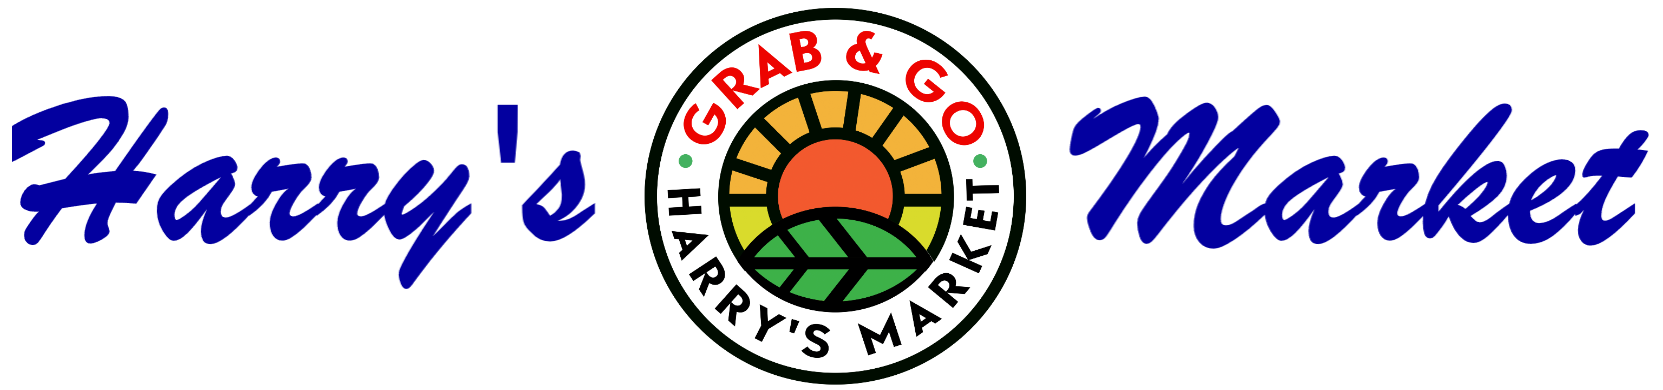 Harry's Market